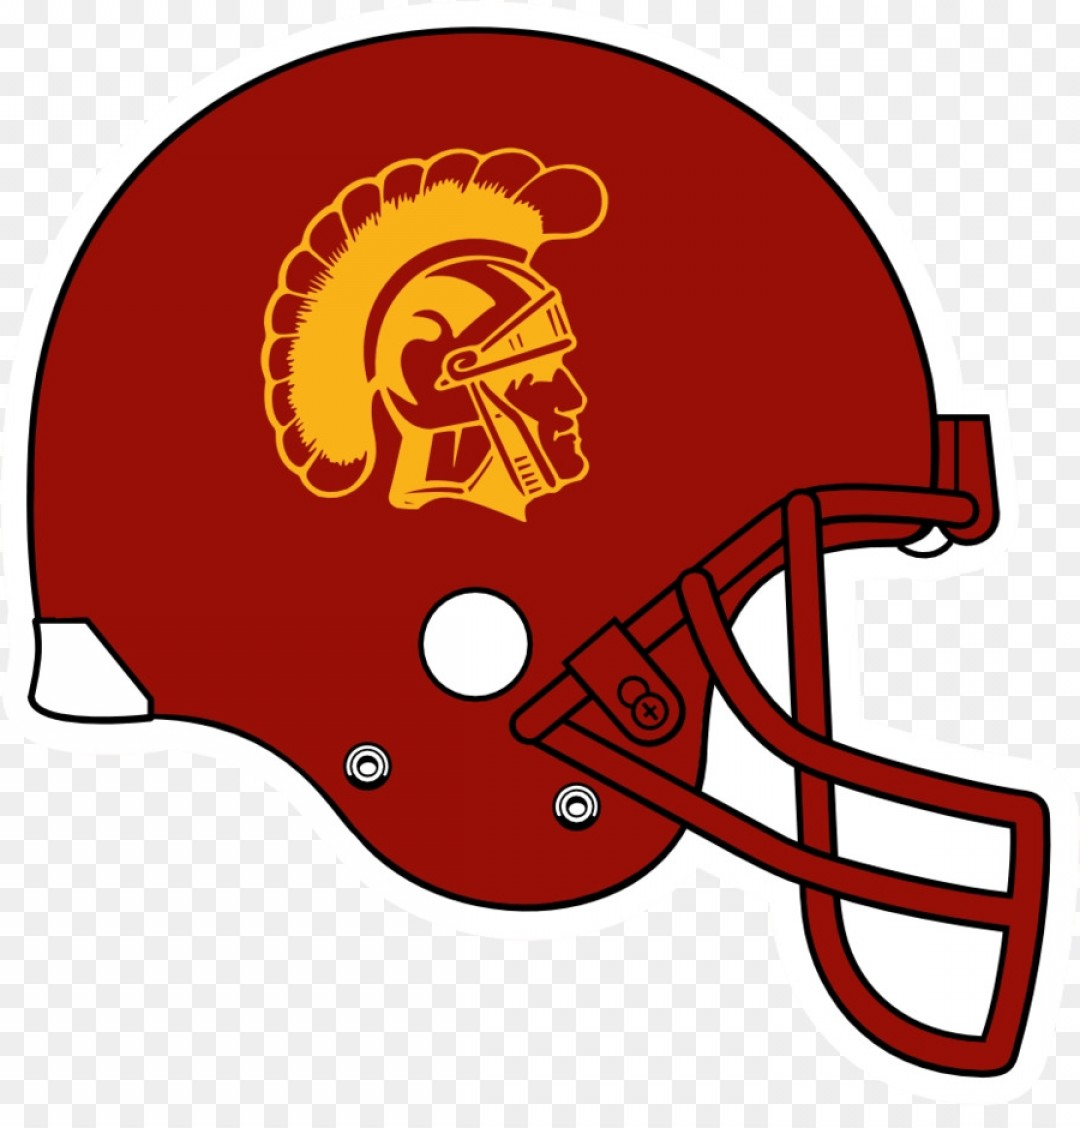 Seahawks Helmet Vector: Png American Football Helmets Usc Trojans Football New